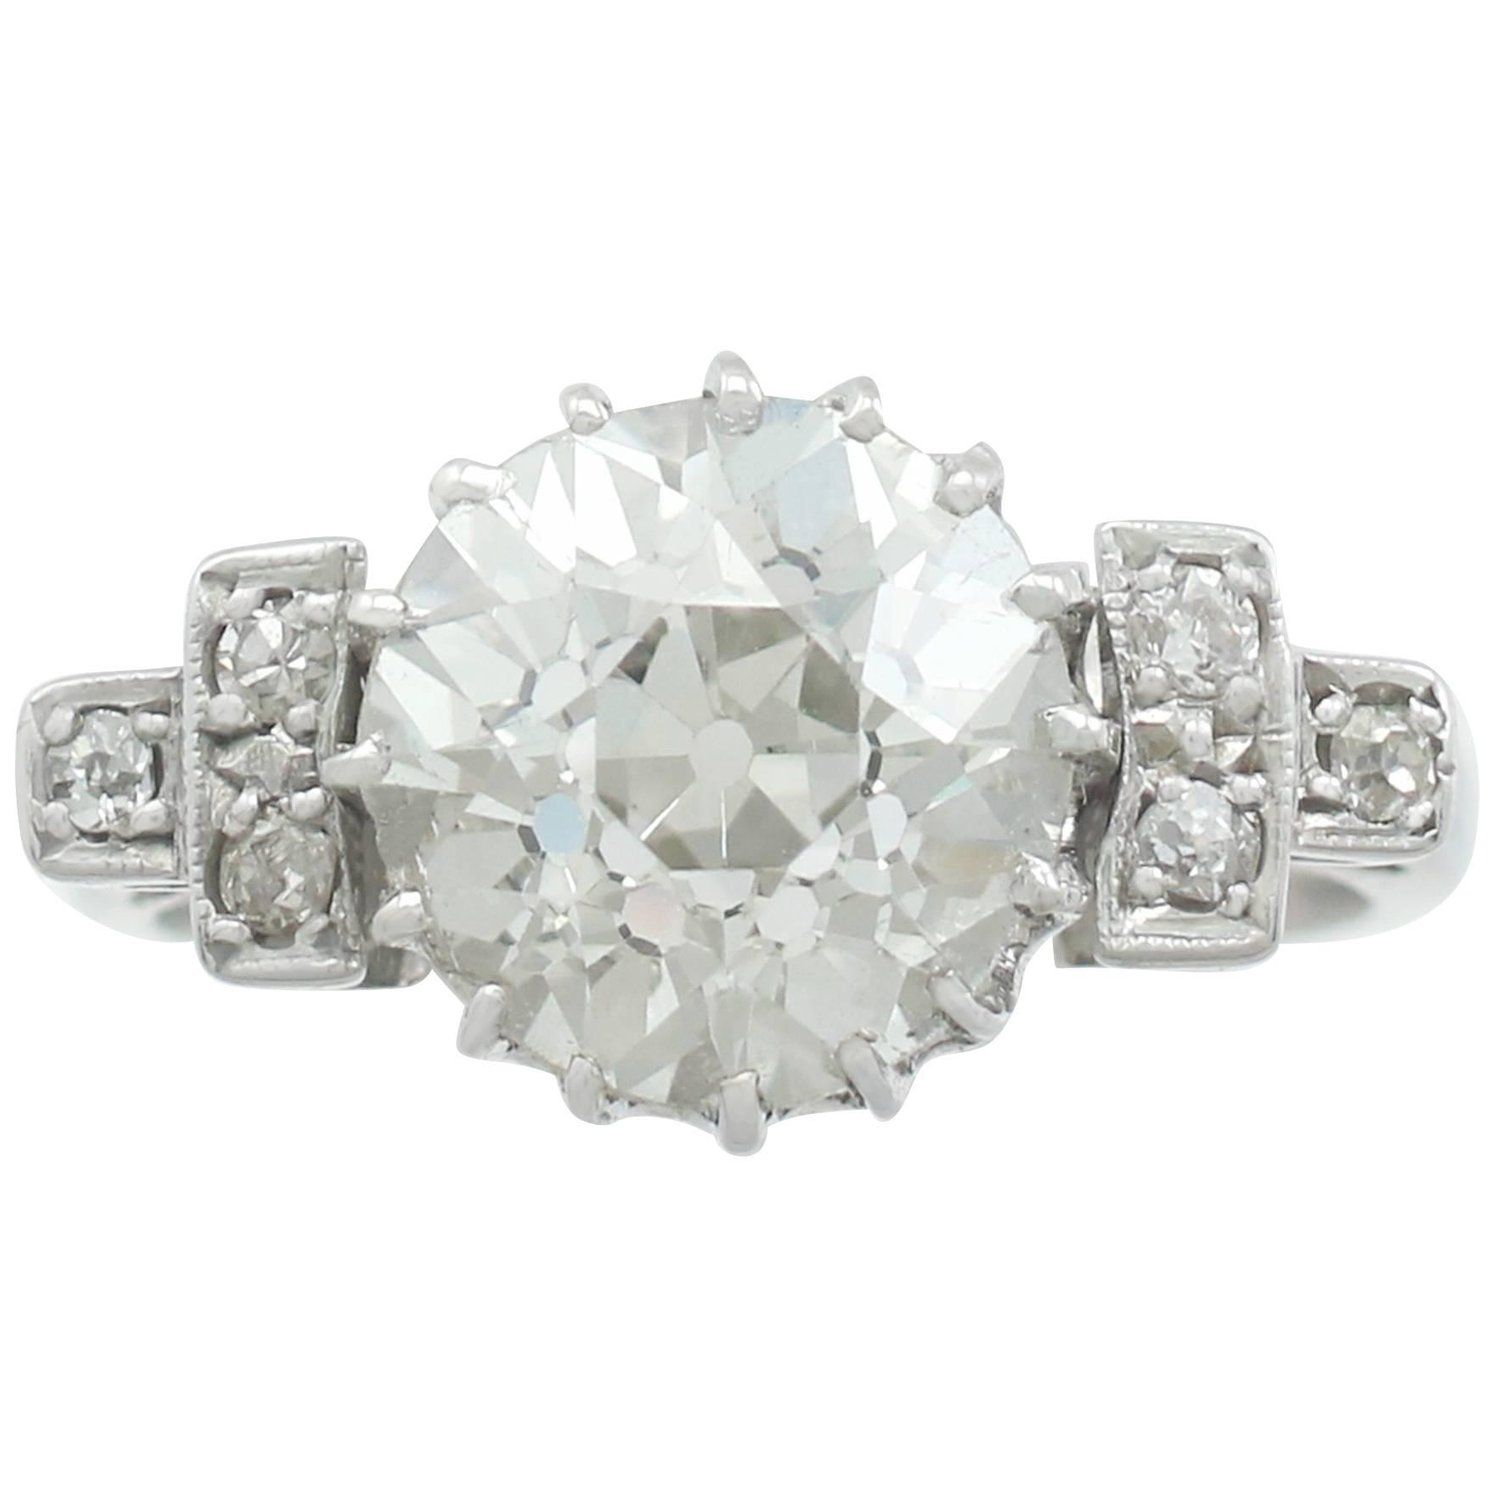 1940s 3 00 Carat Diamond And White Gold Cocktail Ring White Gold Dress Ring Unique Diamond Rings Ladies Diamond Rings